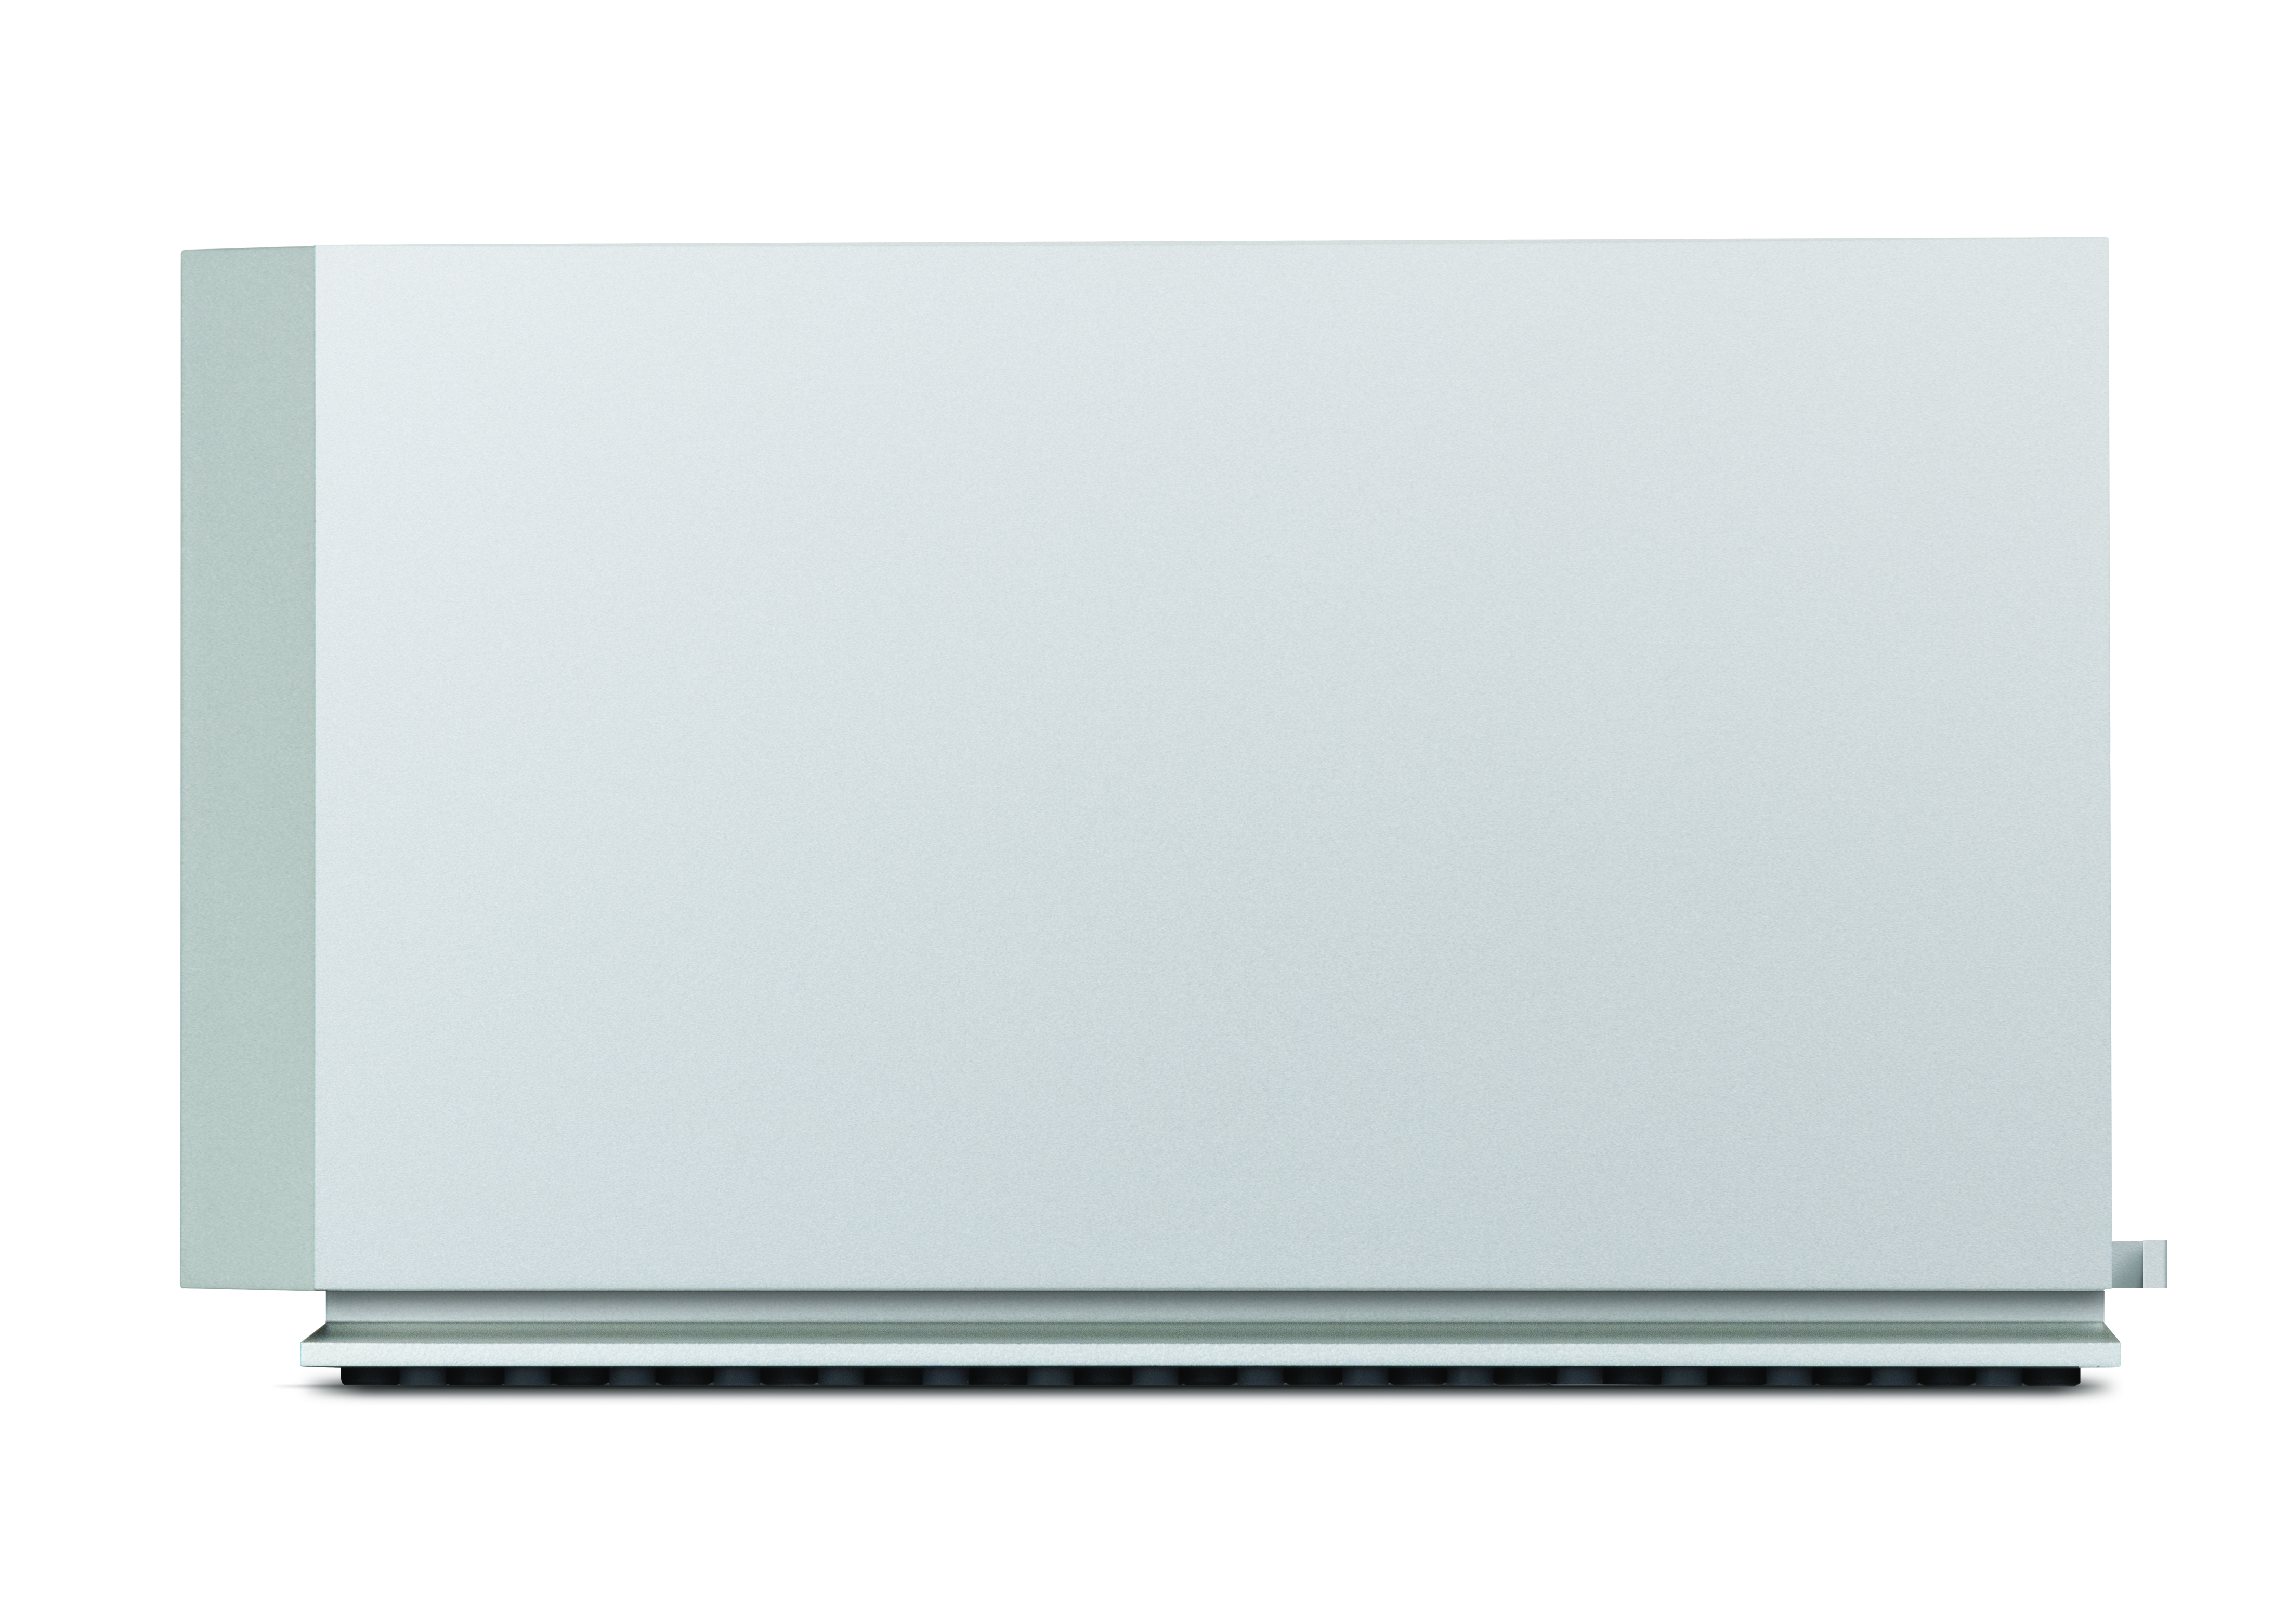 LaCie d2 Thunderbolt 2 Features All-New Design and Industry